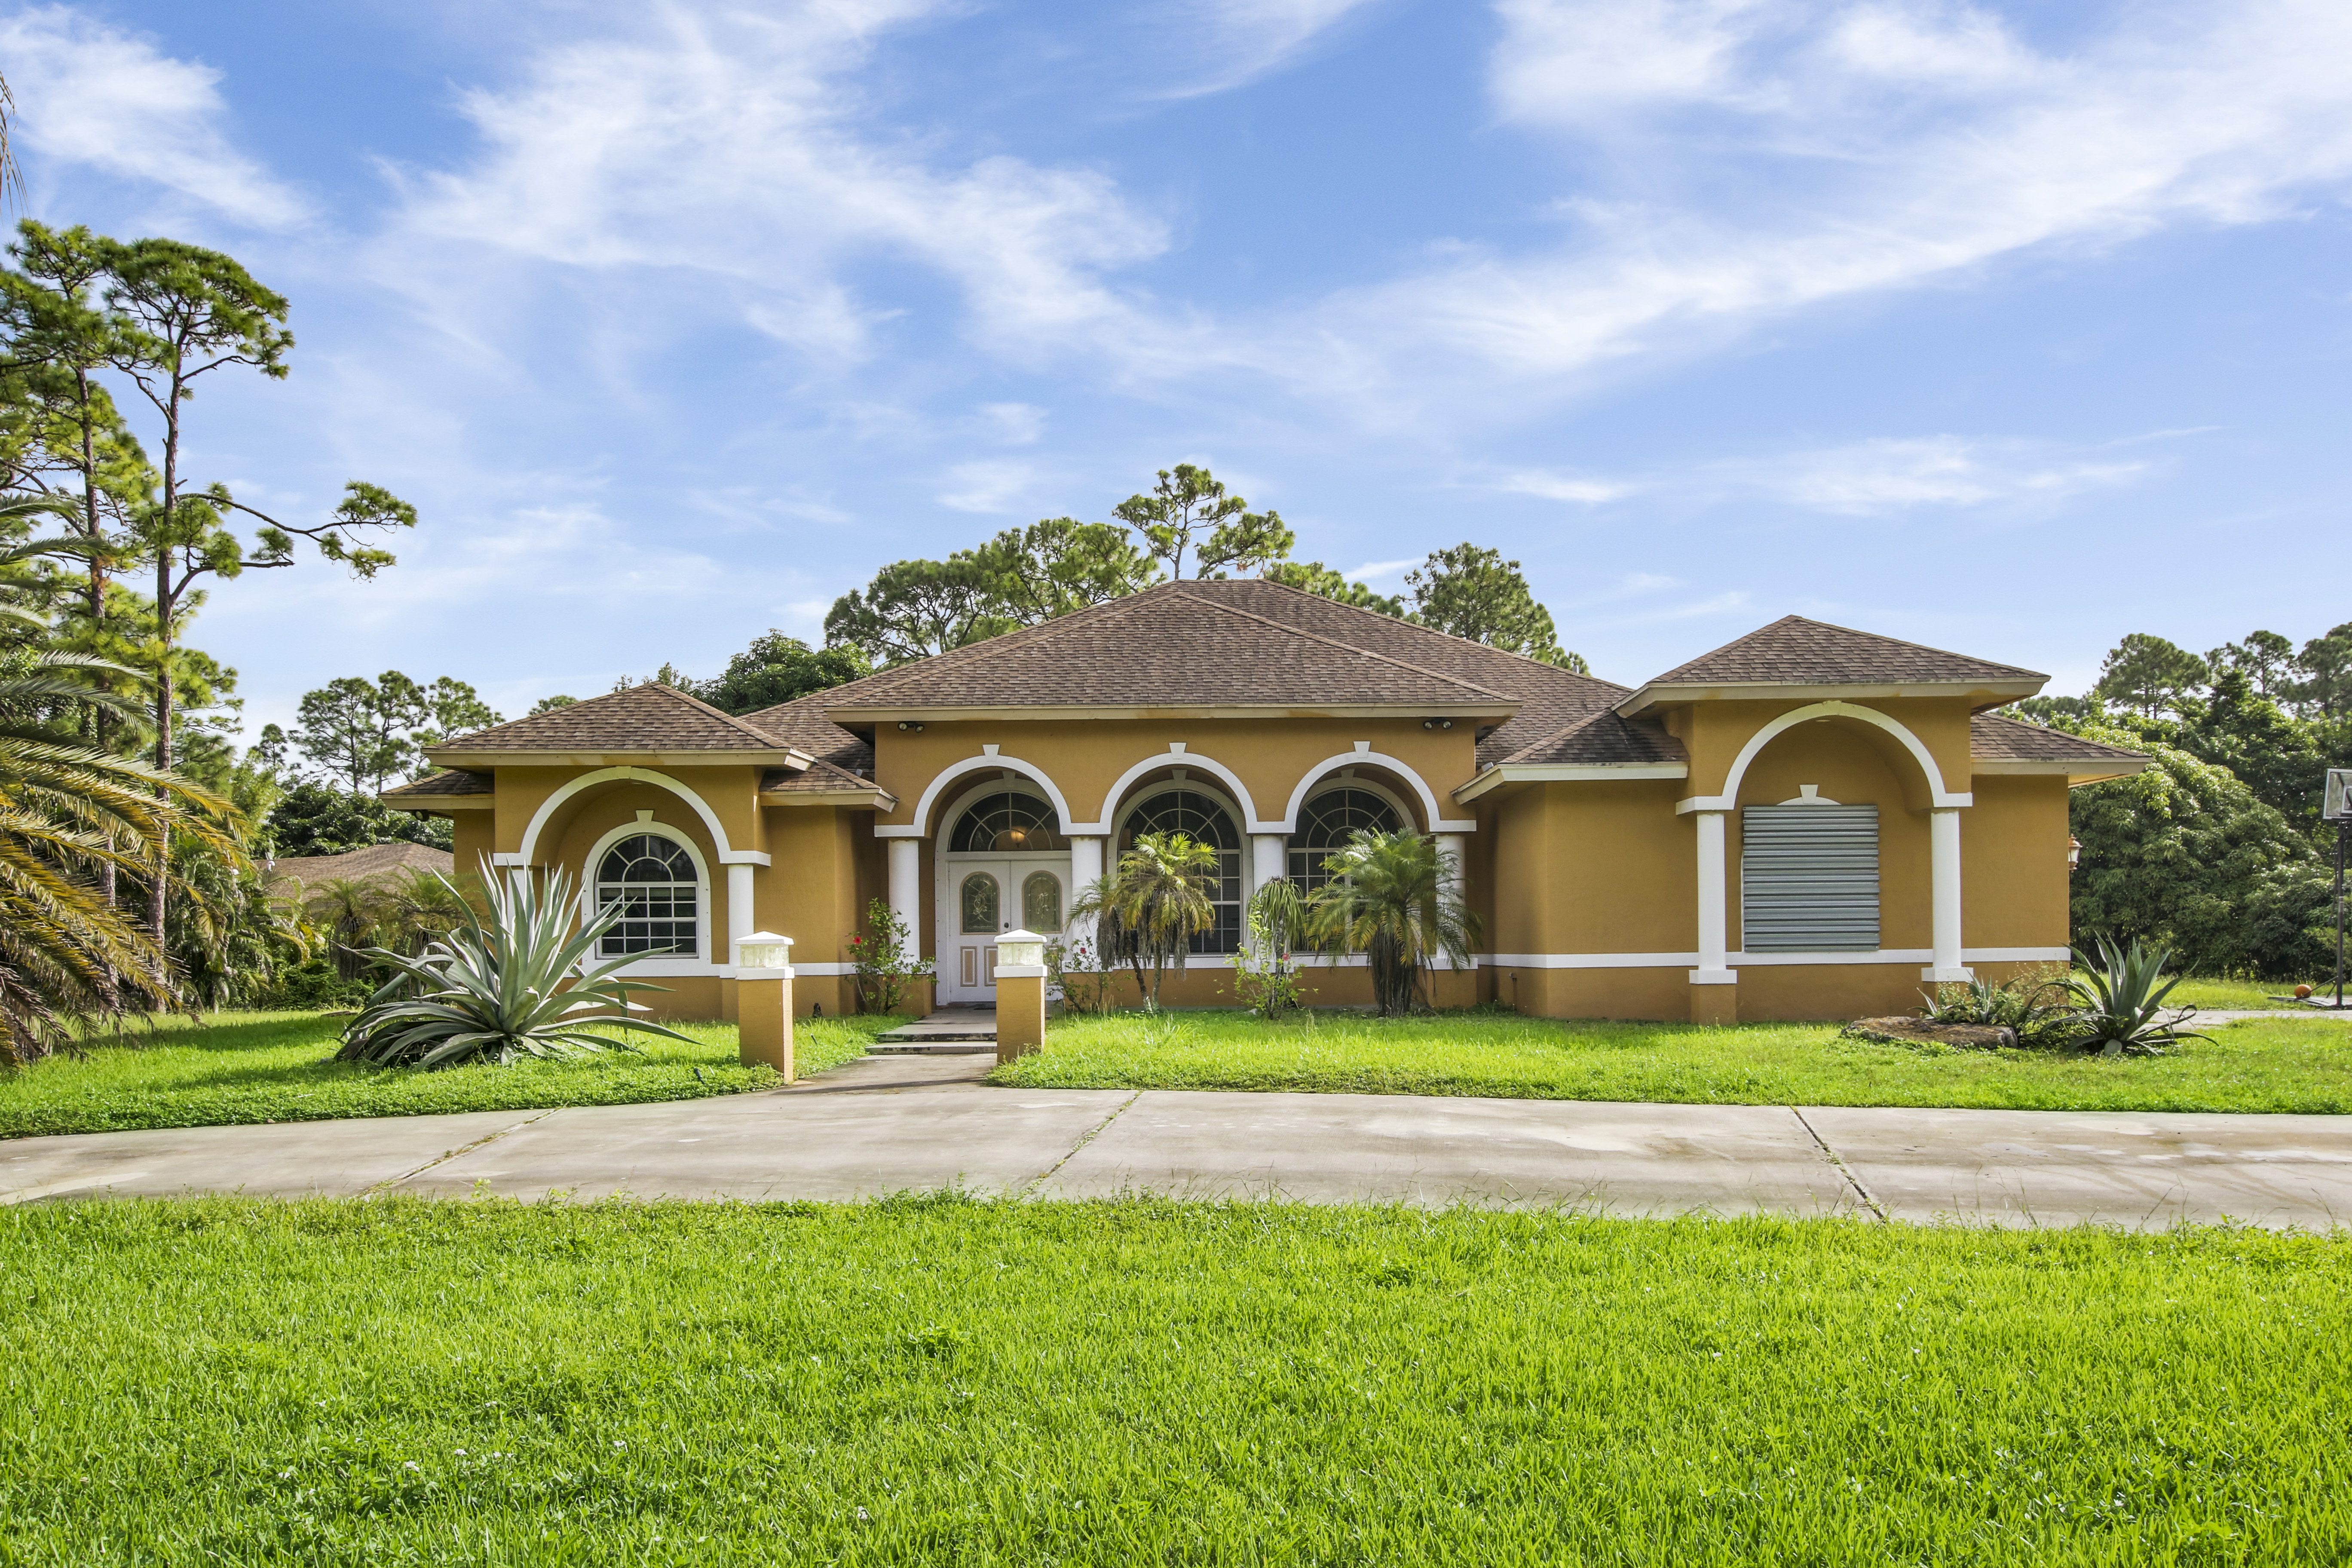 Just Listed! Loxahatchee Home with Over 3,000 sq ft! A MUST SEE!